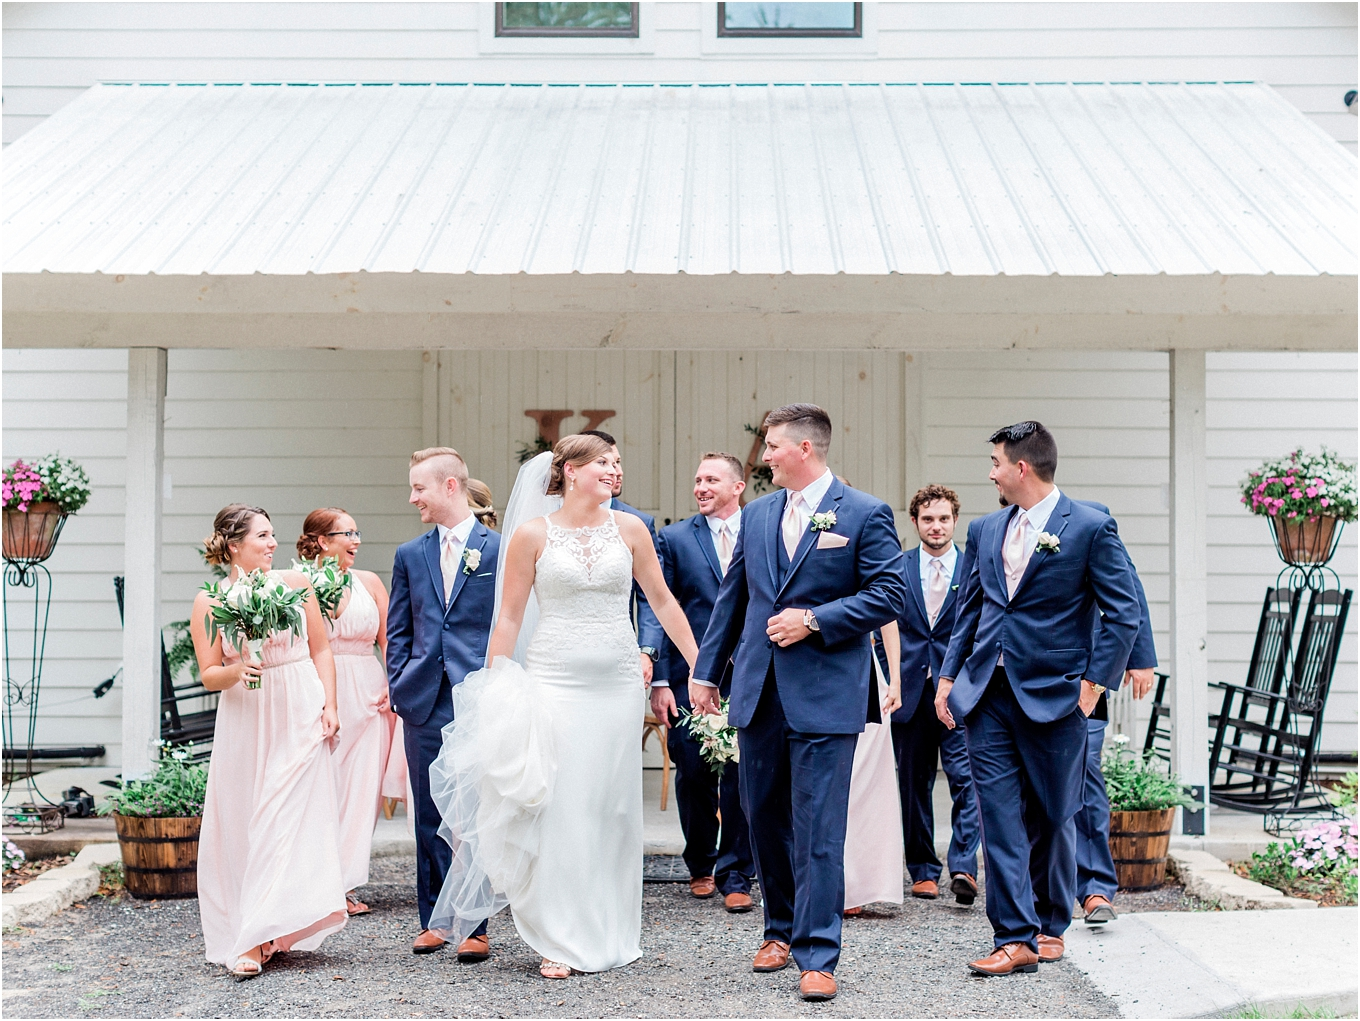 Lisa Silva Photography- Ponte Vedra Beach, St. Augustine and Jacksonville, Florida Fine Art Film Wedding and Boudoir Photography- Elegant Blush and Navy Wedding at Chandler Oaks Barn in St. Augustine, Florida_0076.jpg